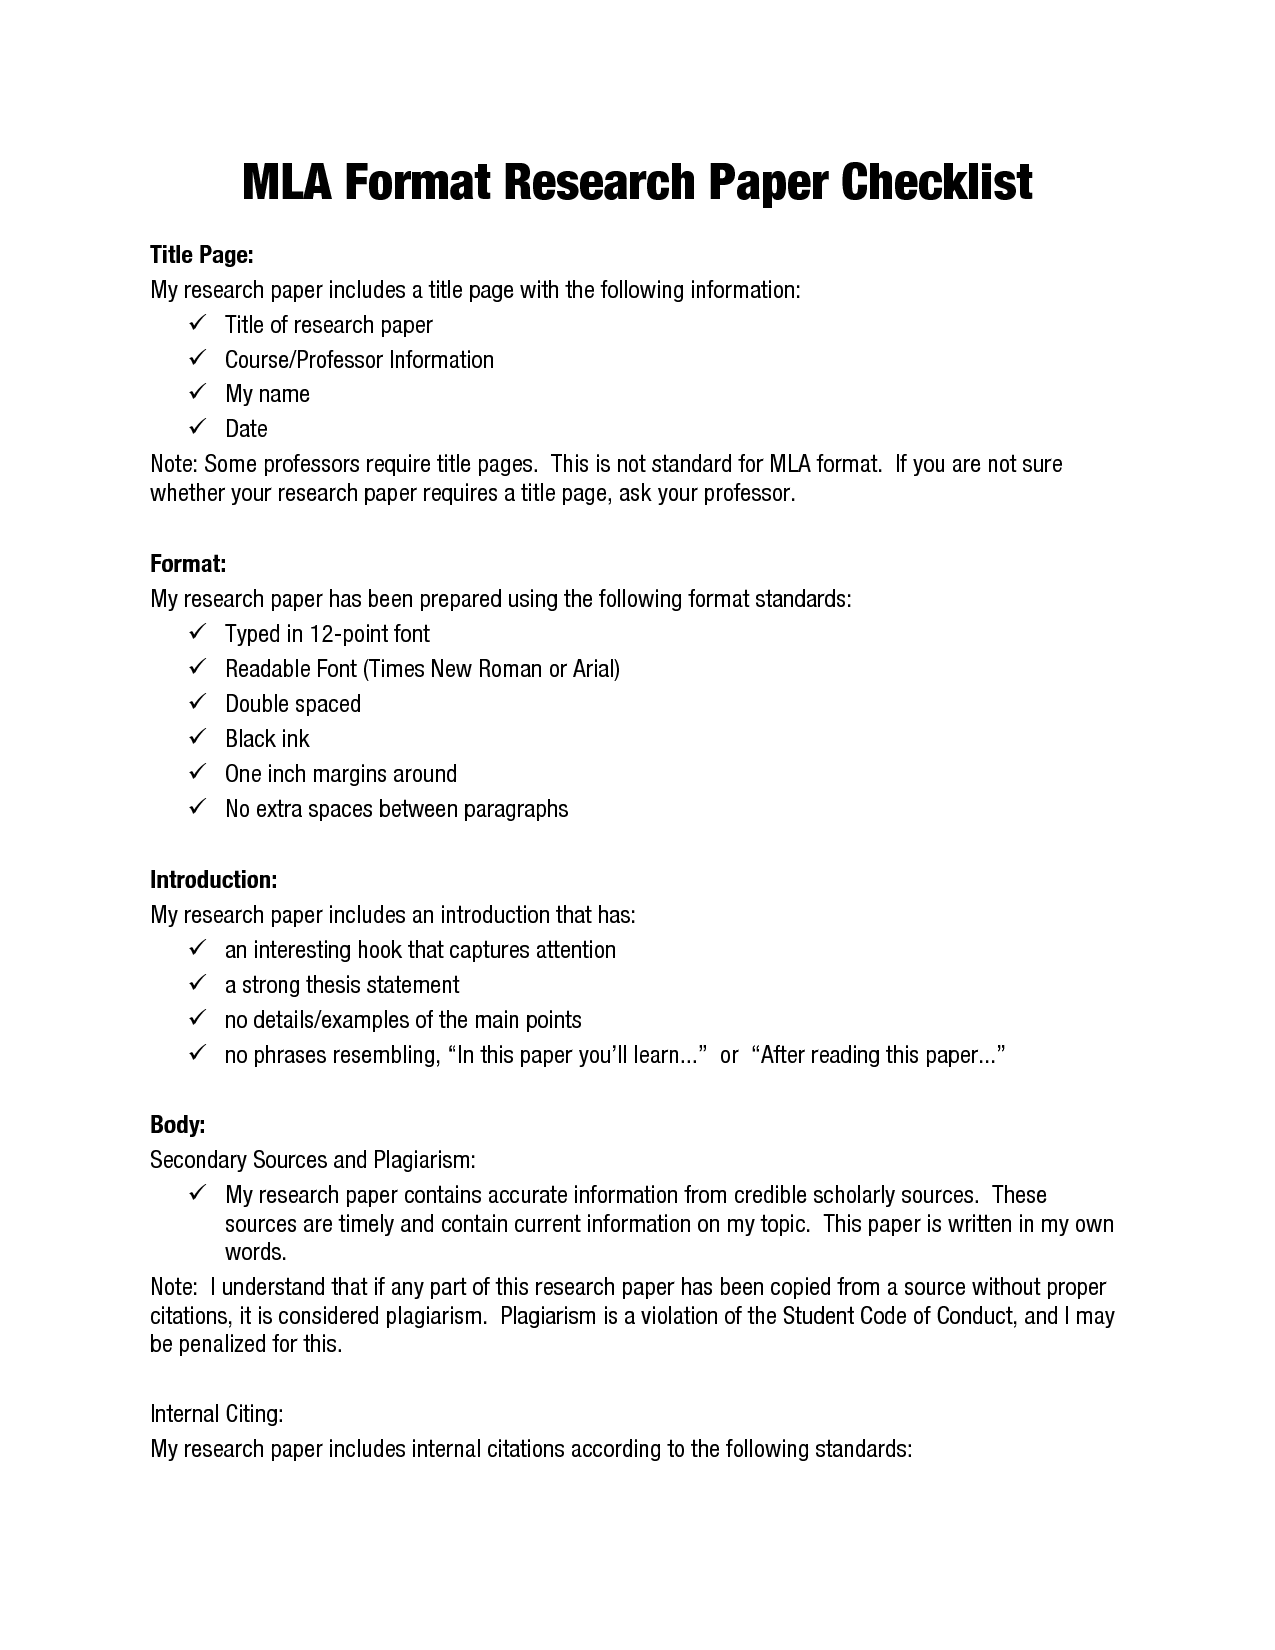 004 How To Make Research Paper Format Pdf Breathtaking Full